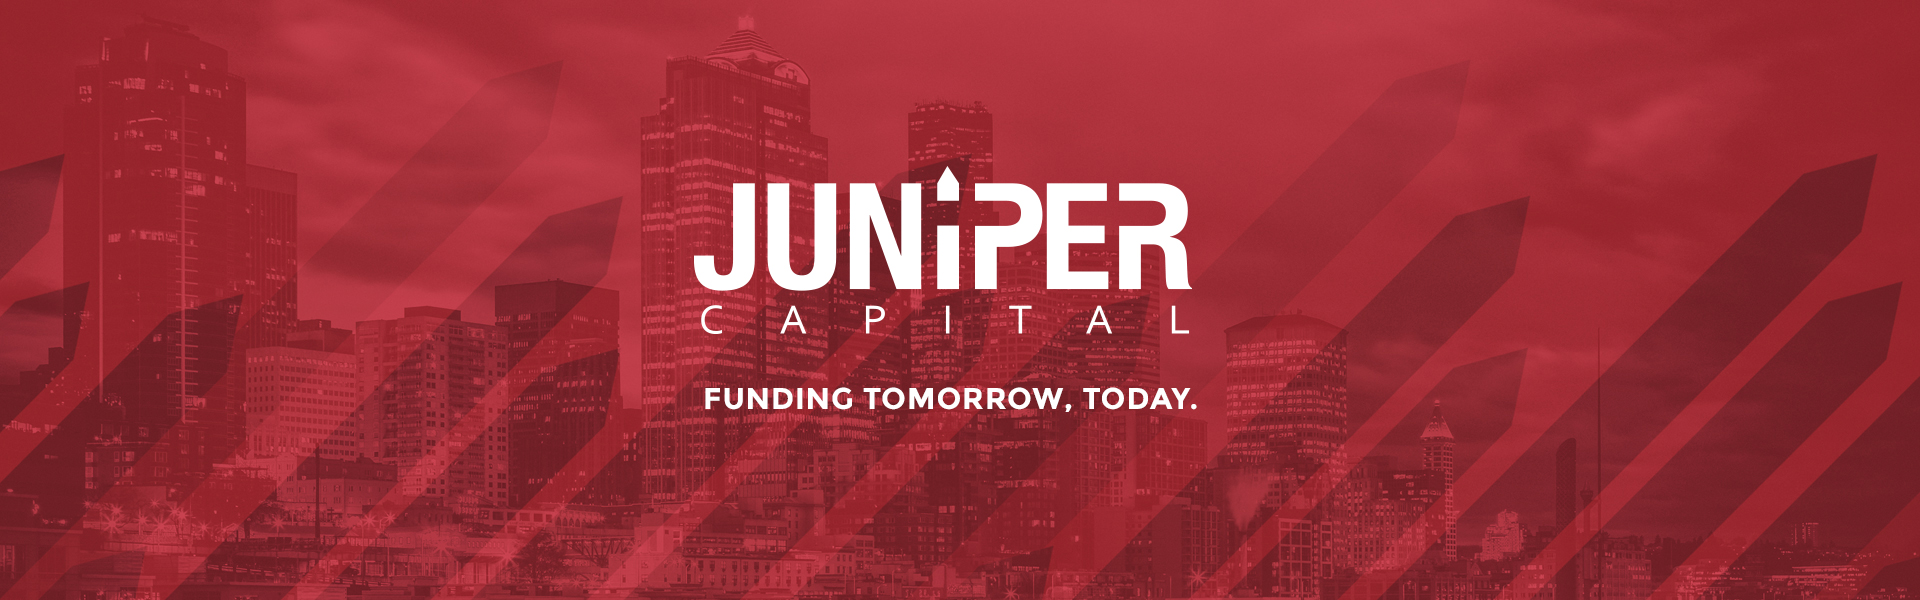 Juniper Capital Header | Seattle Digital Marketing Agency | CMA